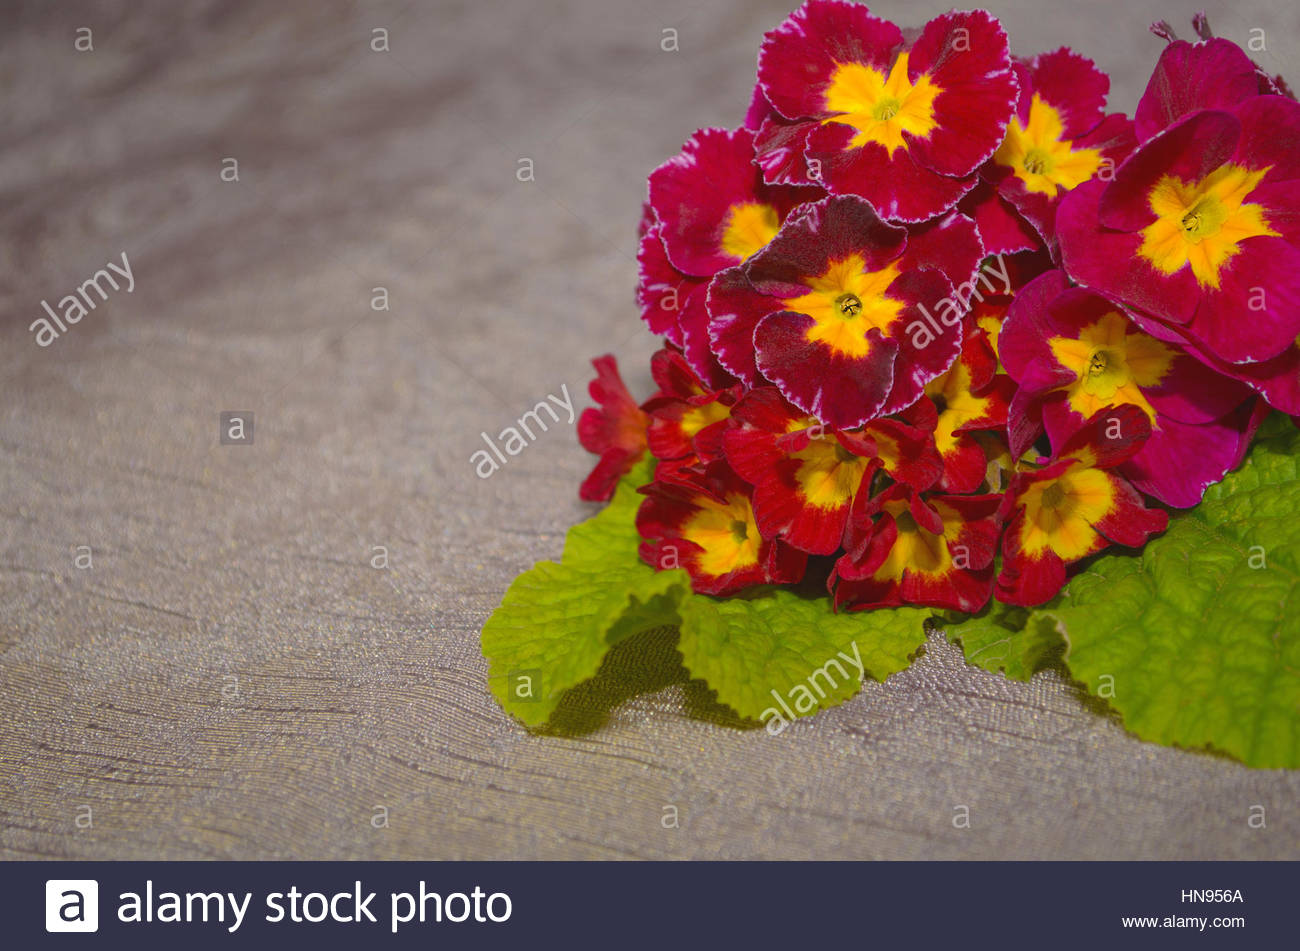 maroon flowers primrose on a brown background - Stock Image